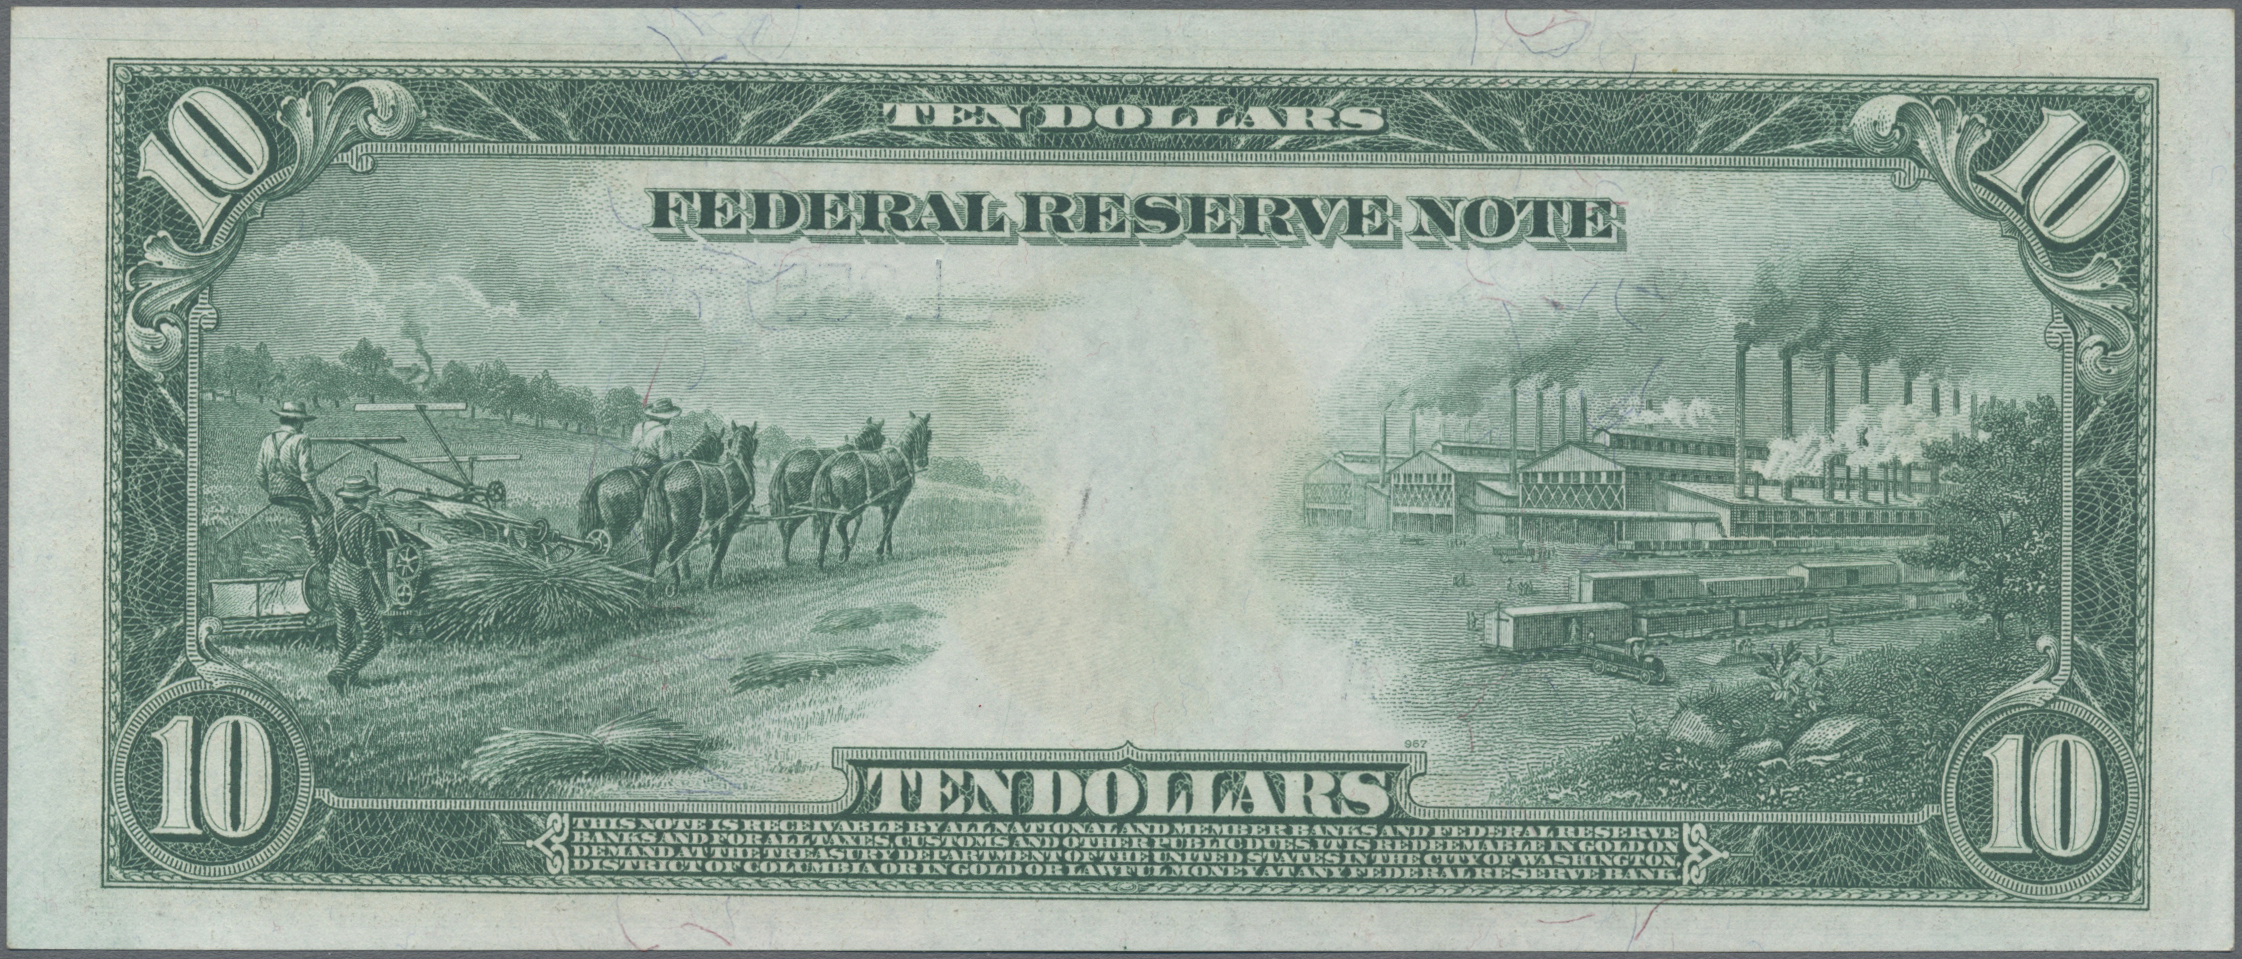 Lot 00906 - United States of America | Banknoten  -  Auktionshaus Christoph Gärtner GmbH & Co. KG Sale #48 The Banknotes